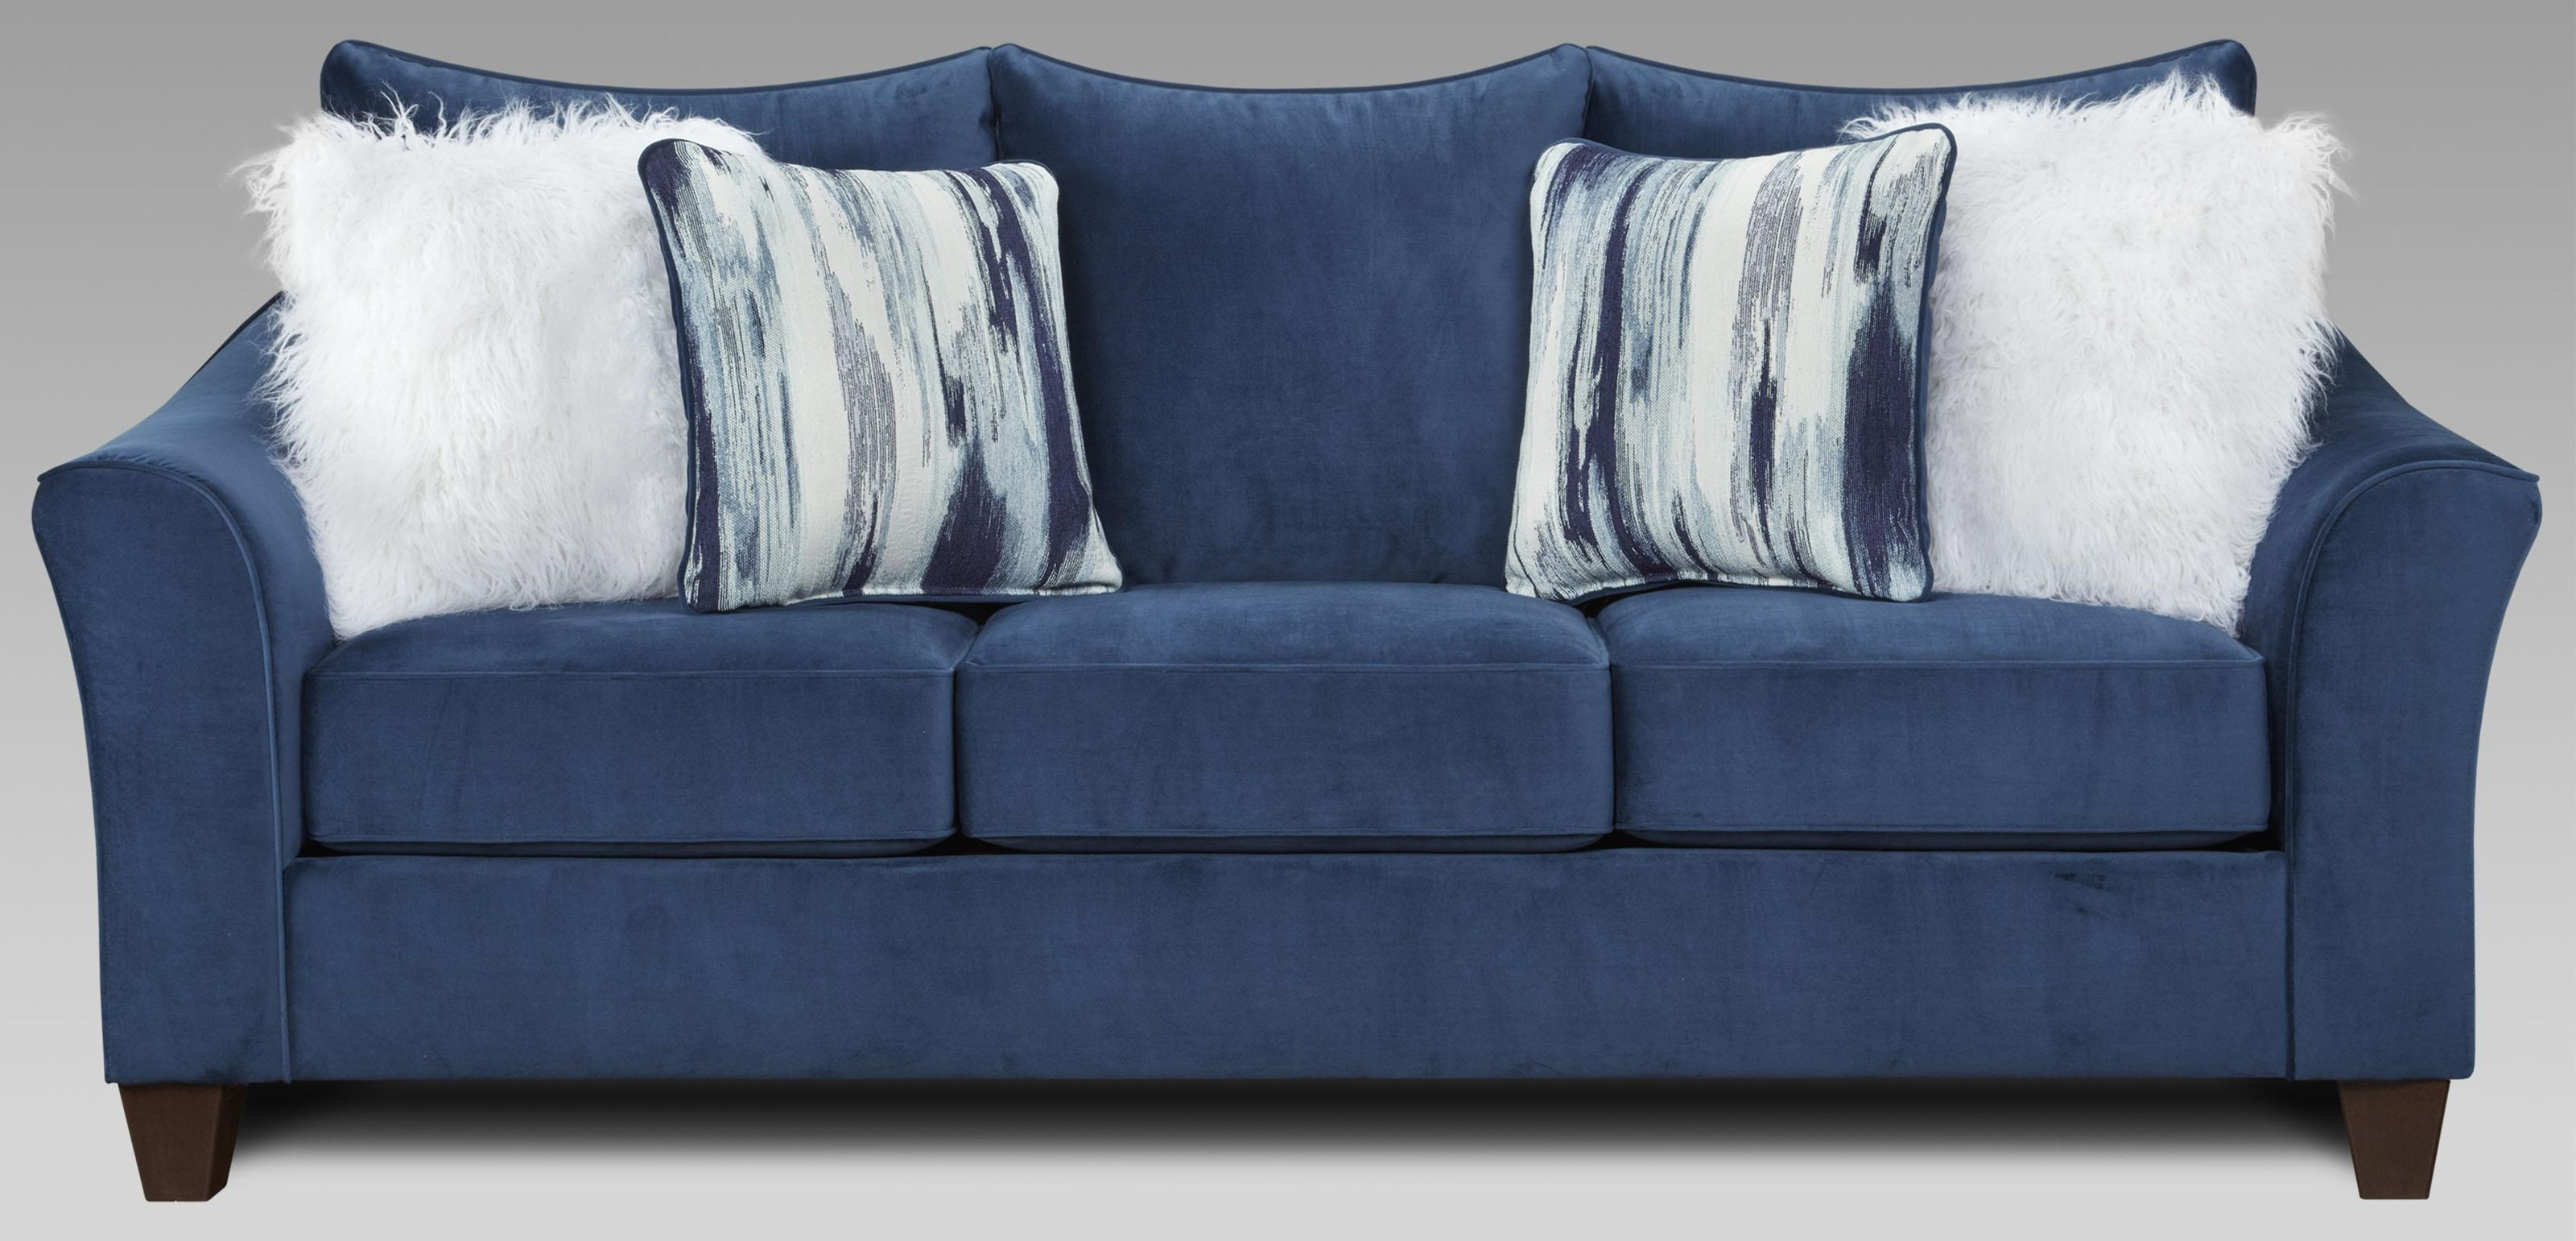 7700 Sofa with Flared Arms at Bennett's Furniture and Mattresses